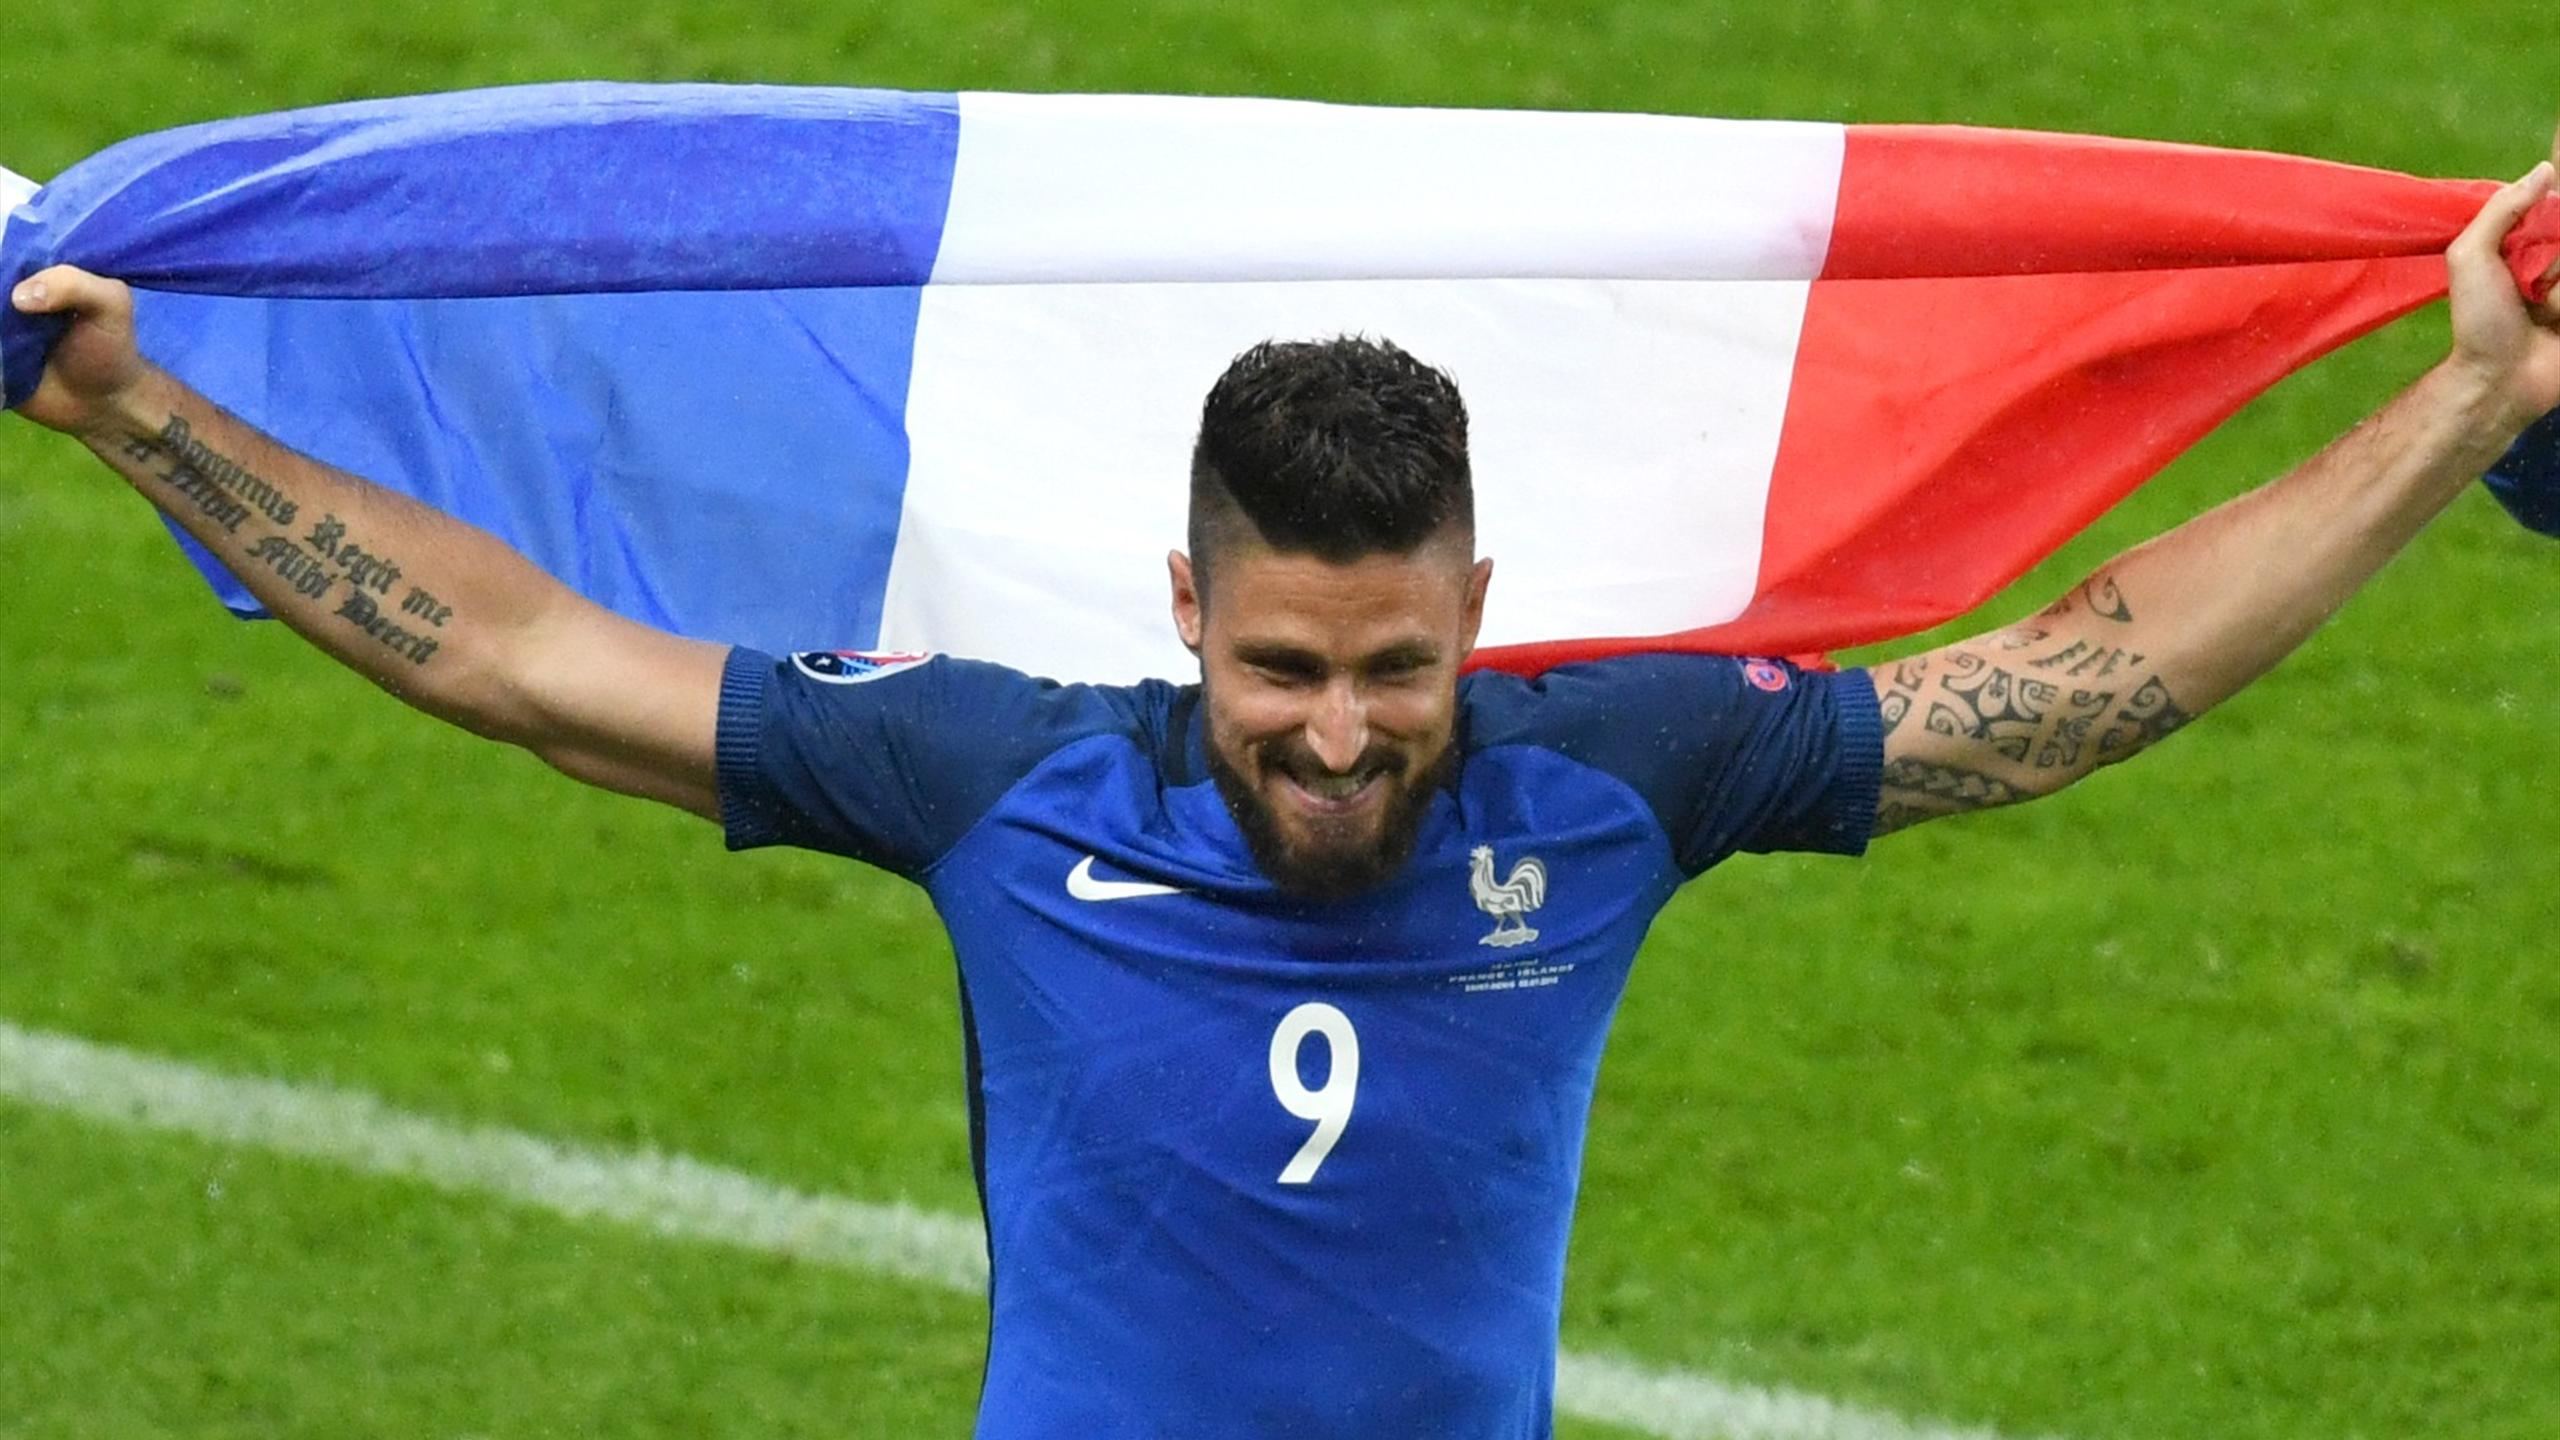 France's forward Olivier Giroud holds a French flag after winning the Euro 2016 quarter-final football match between France and Iceland